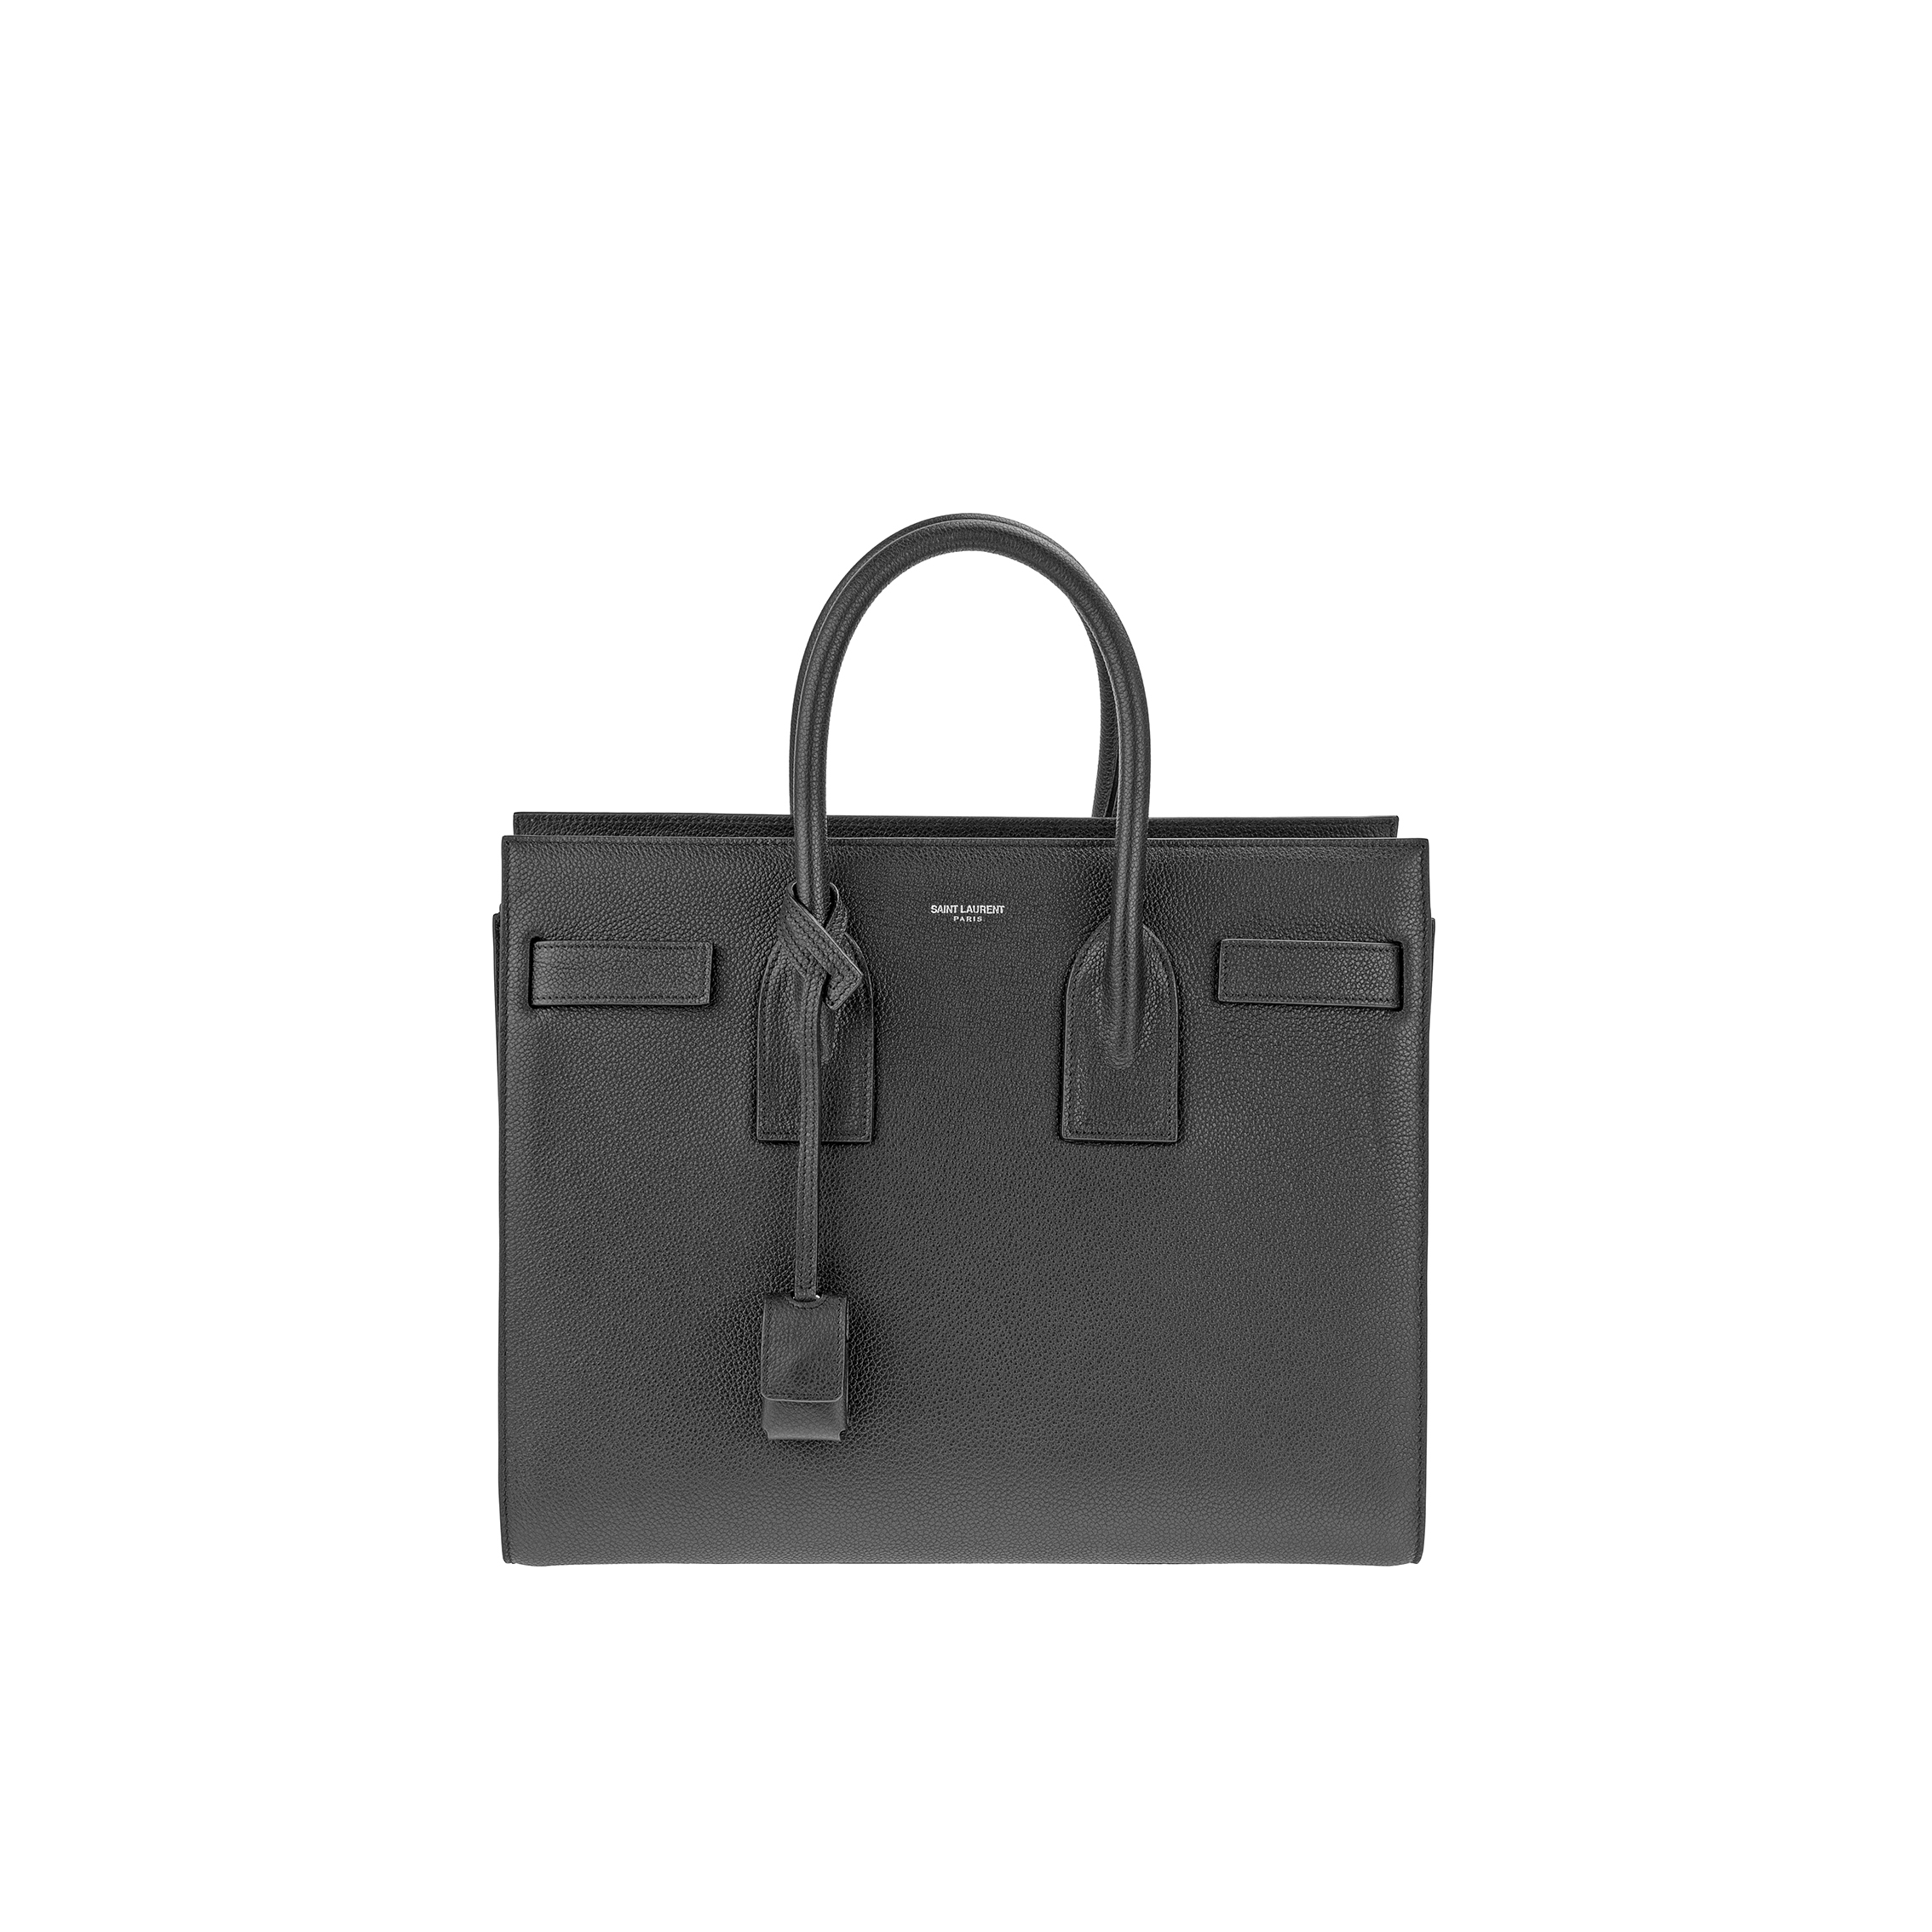 Handbag for rent Yves Saint Laurent - Rent Fashion Bag